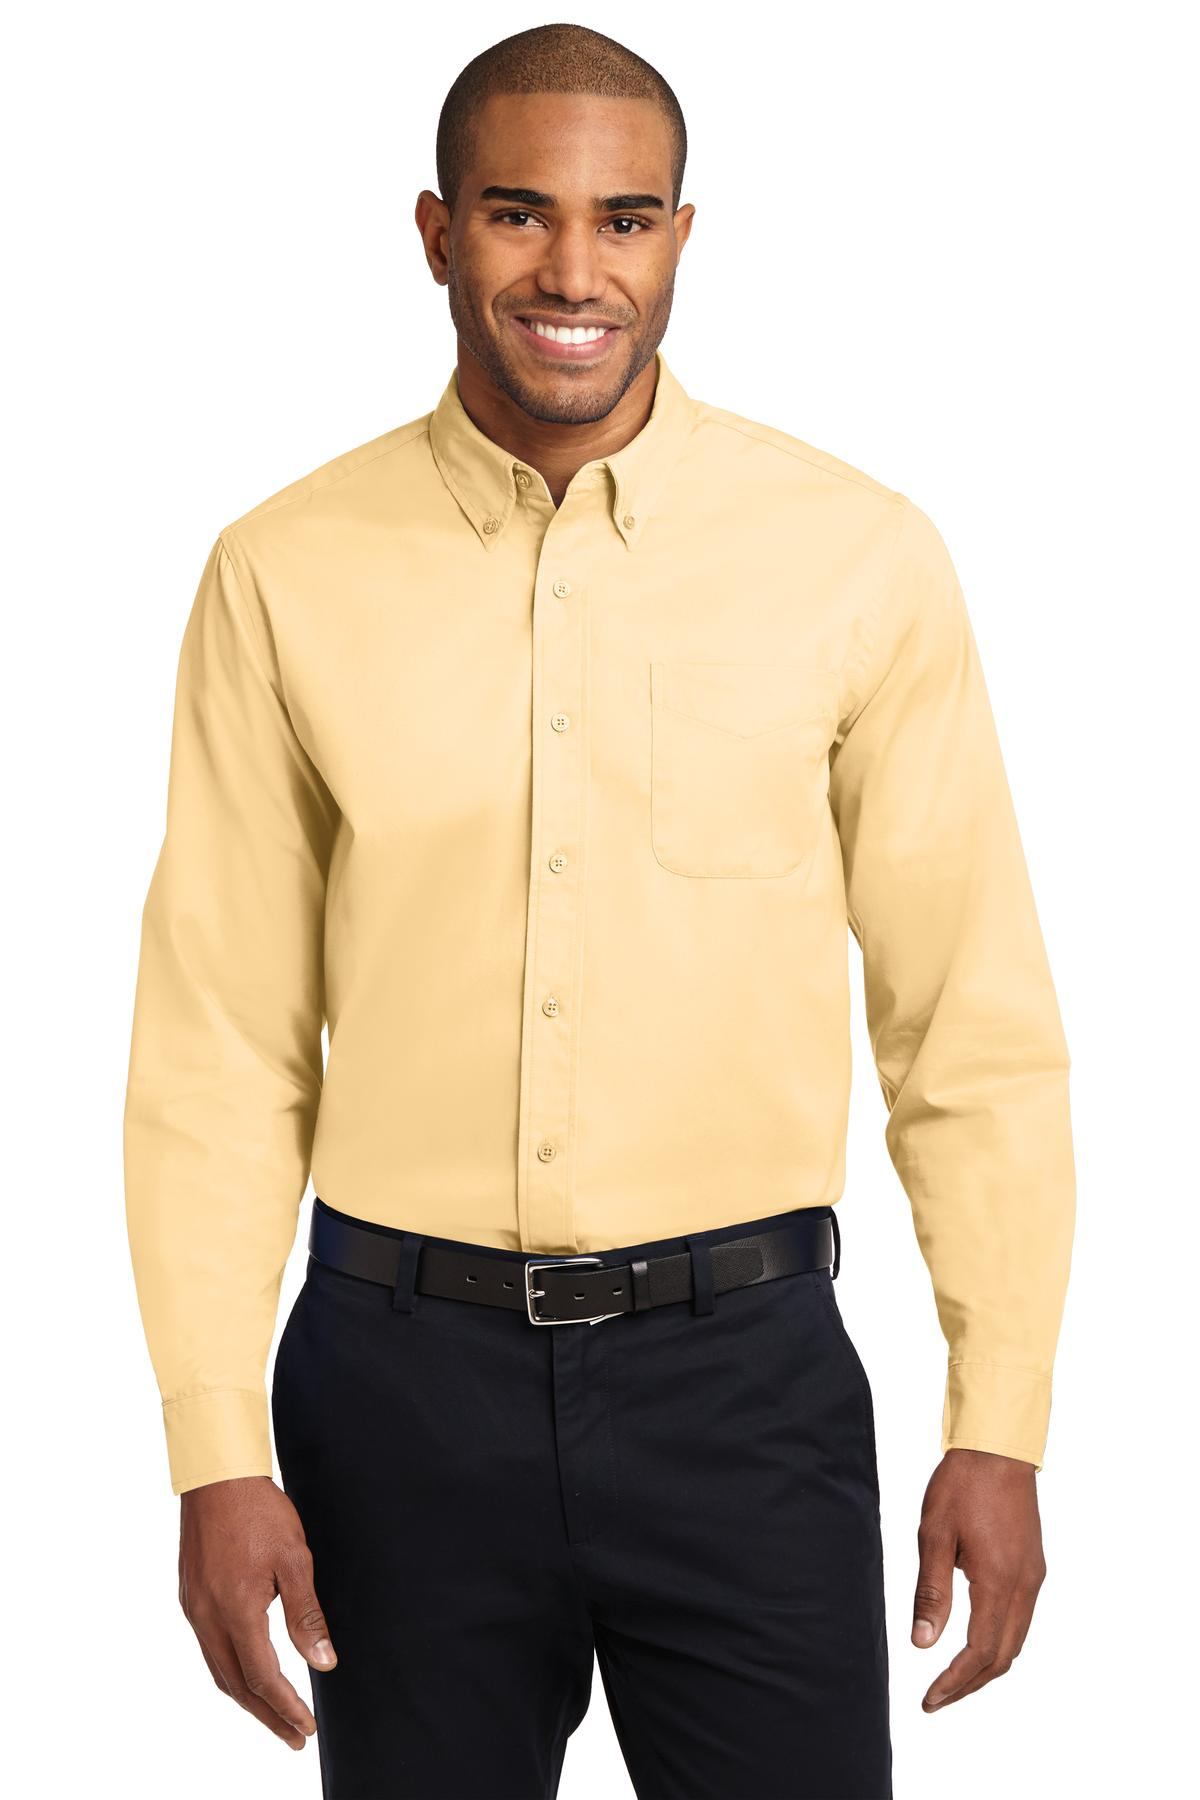 Port Authority ®  Tall Long Sleeve Easy Care Shirt.  TLS608 - Yellow